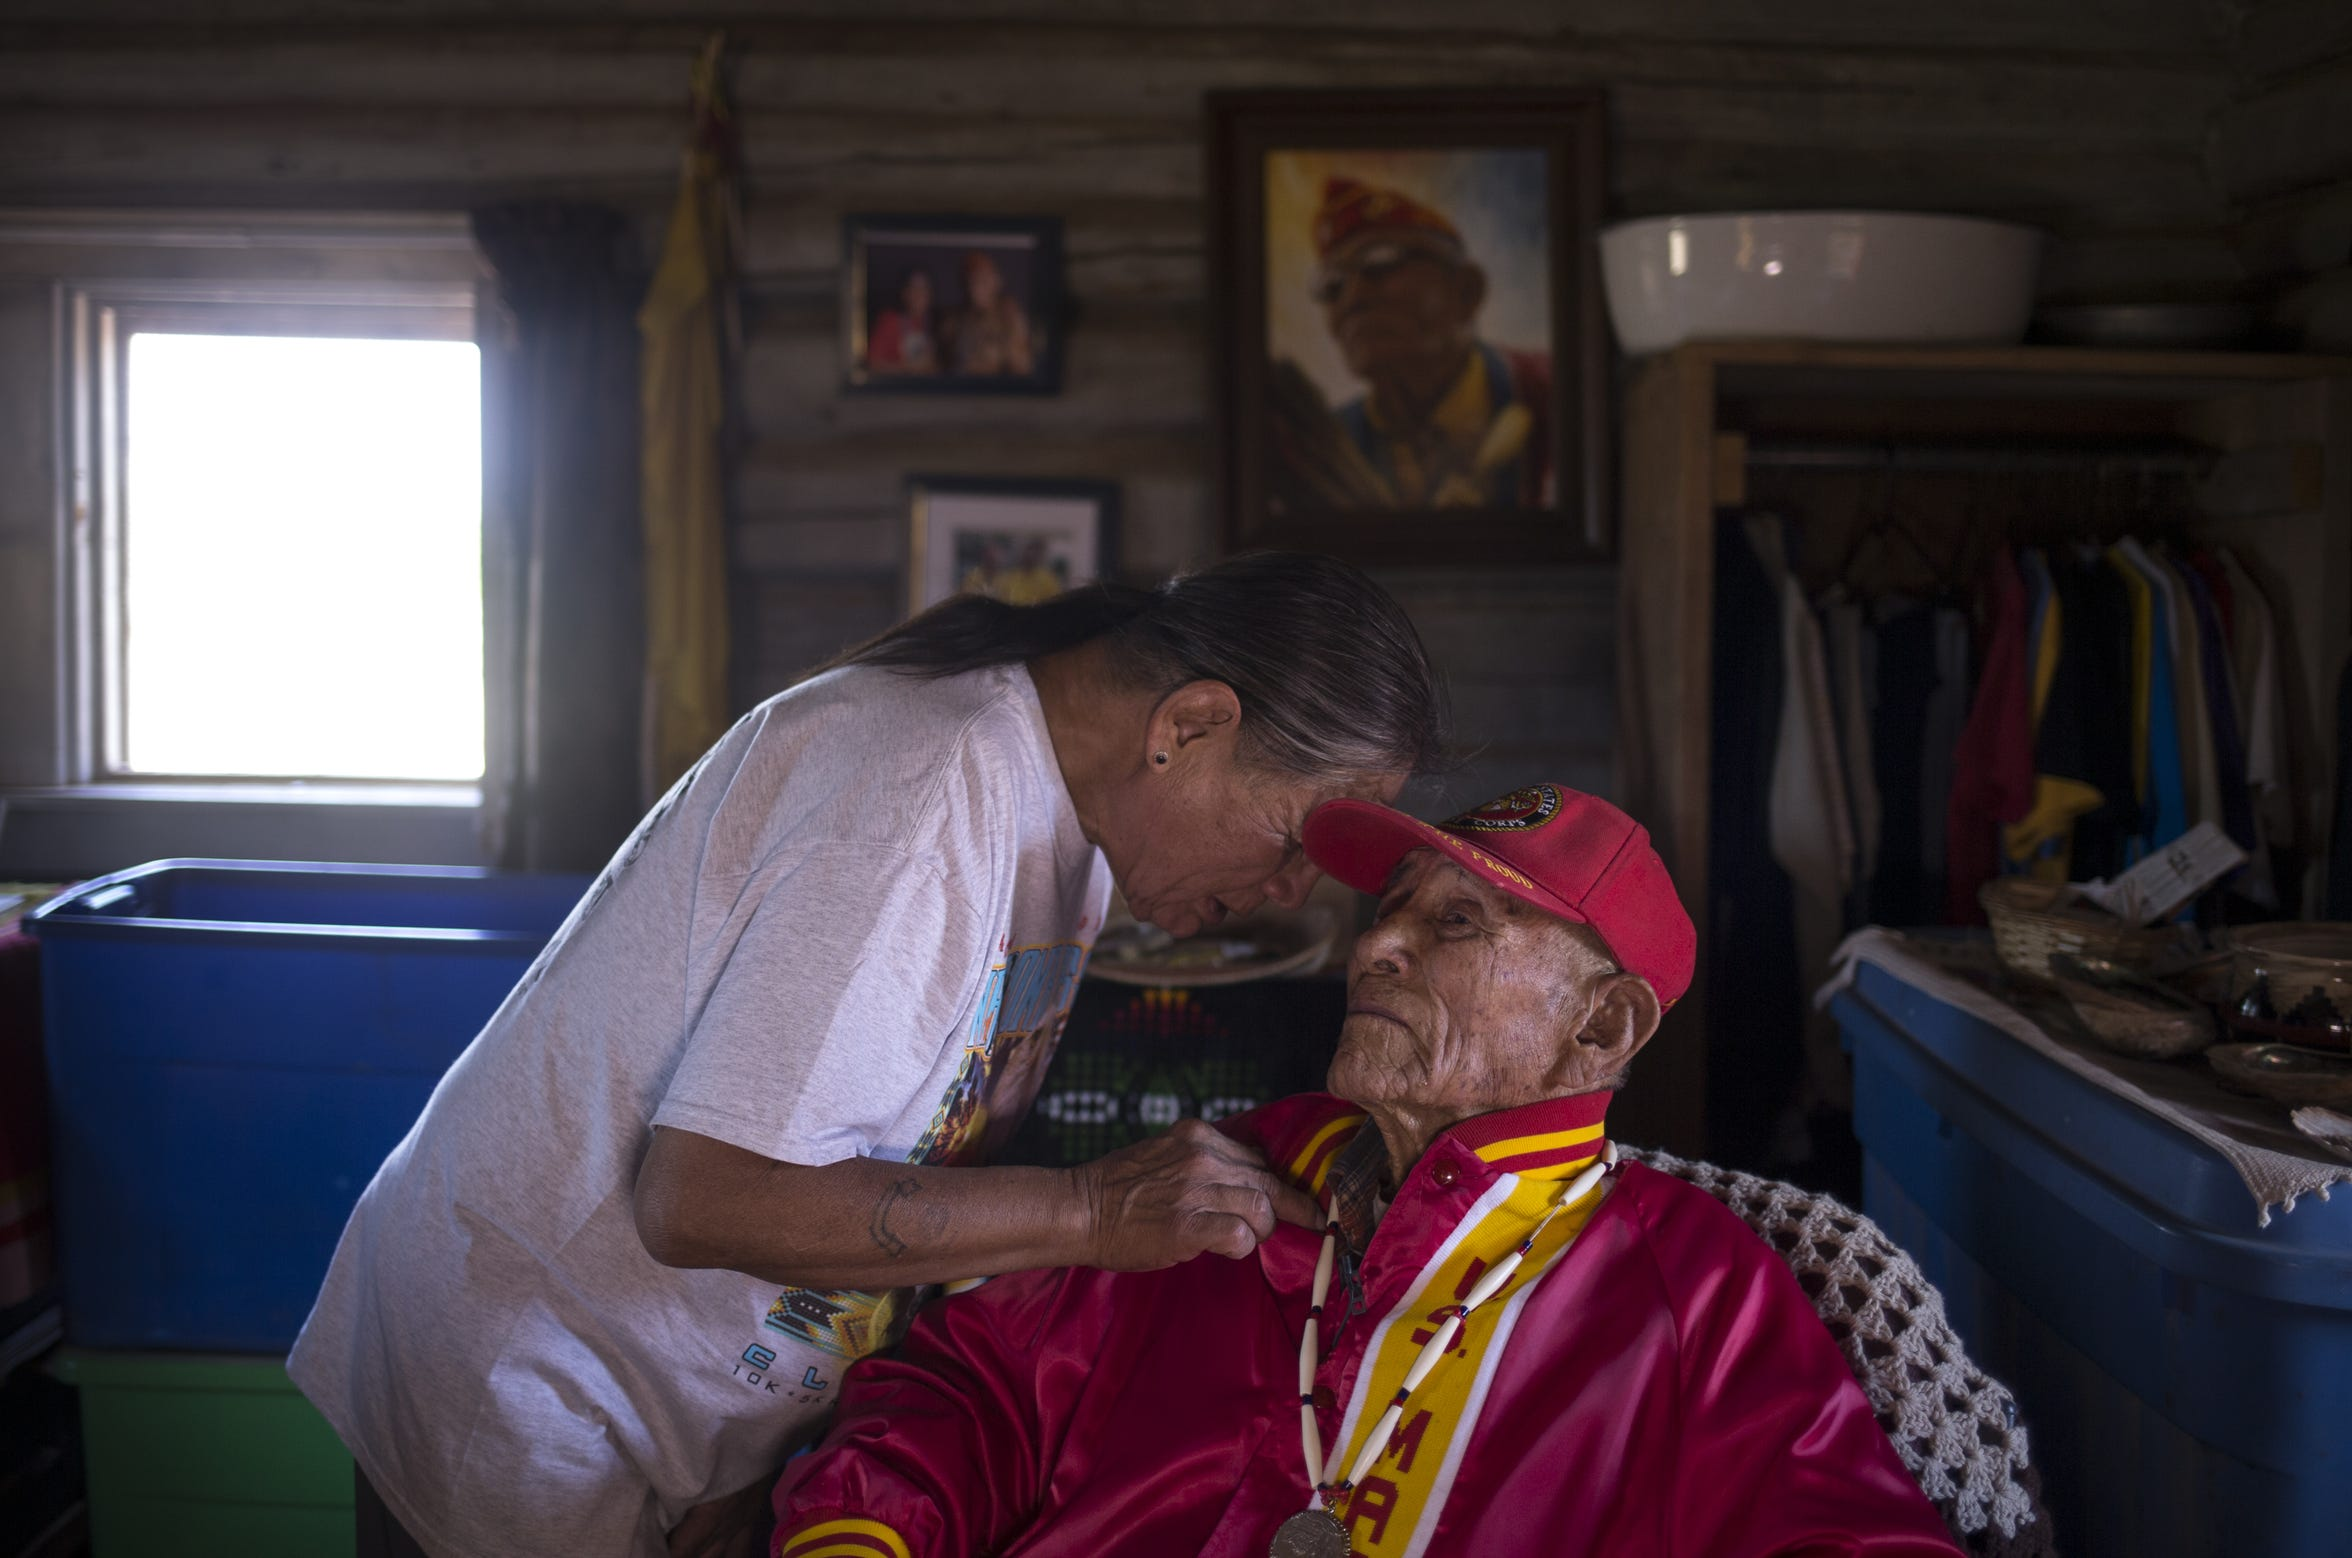 Ronald Kinsel talks with his father, Navajo Code Talker John Kinsel, Sr. on July 11, 2019, at their home in Lukachukai, Arizona.